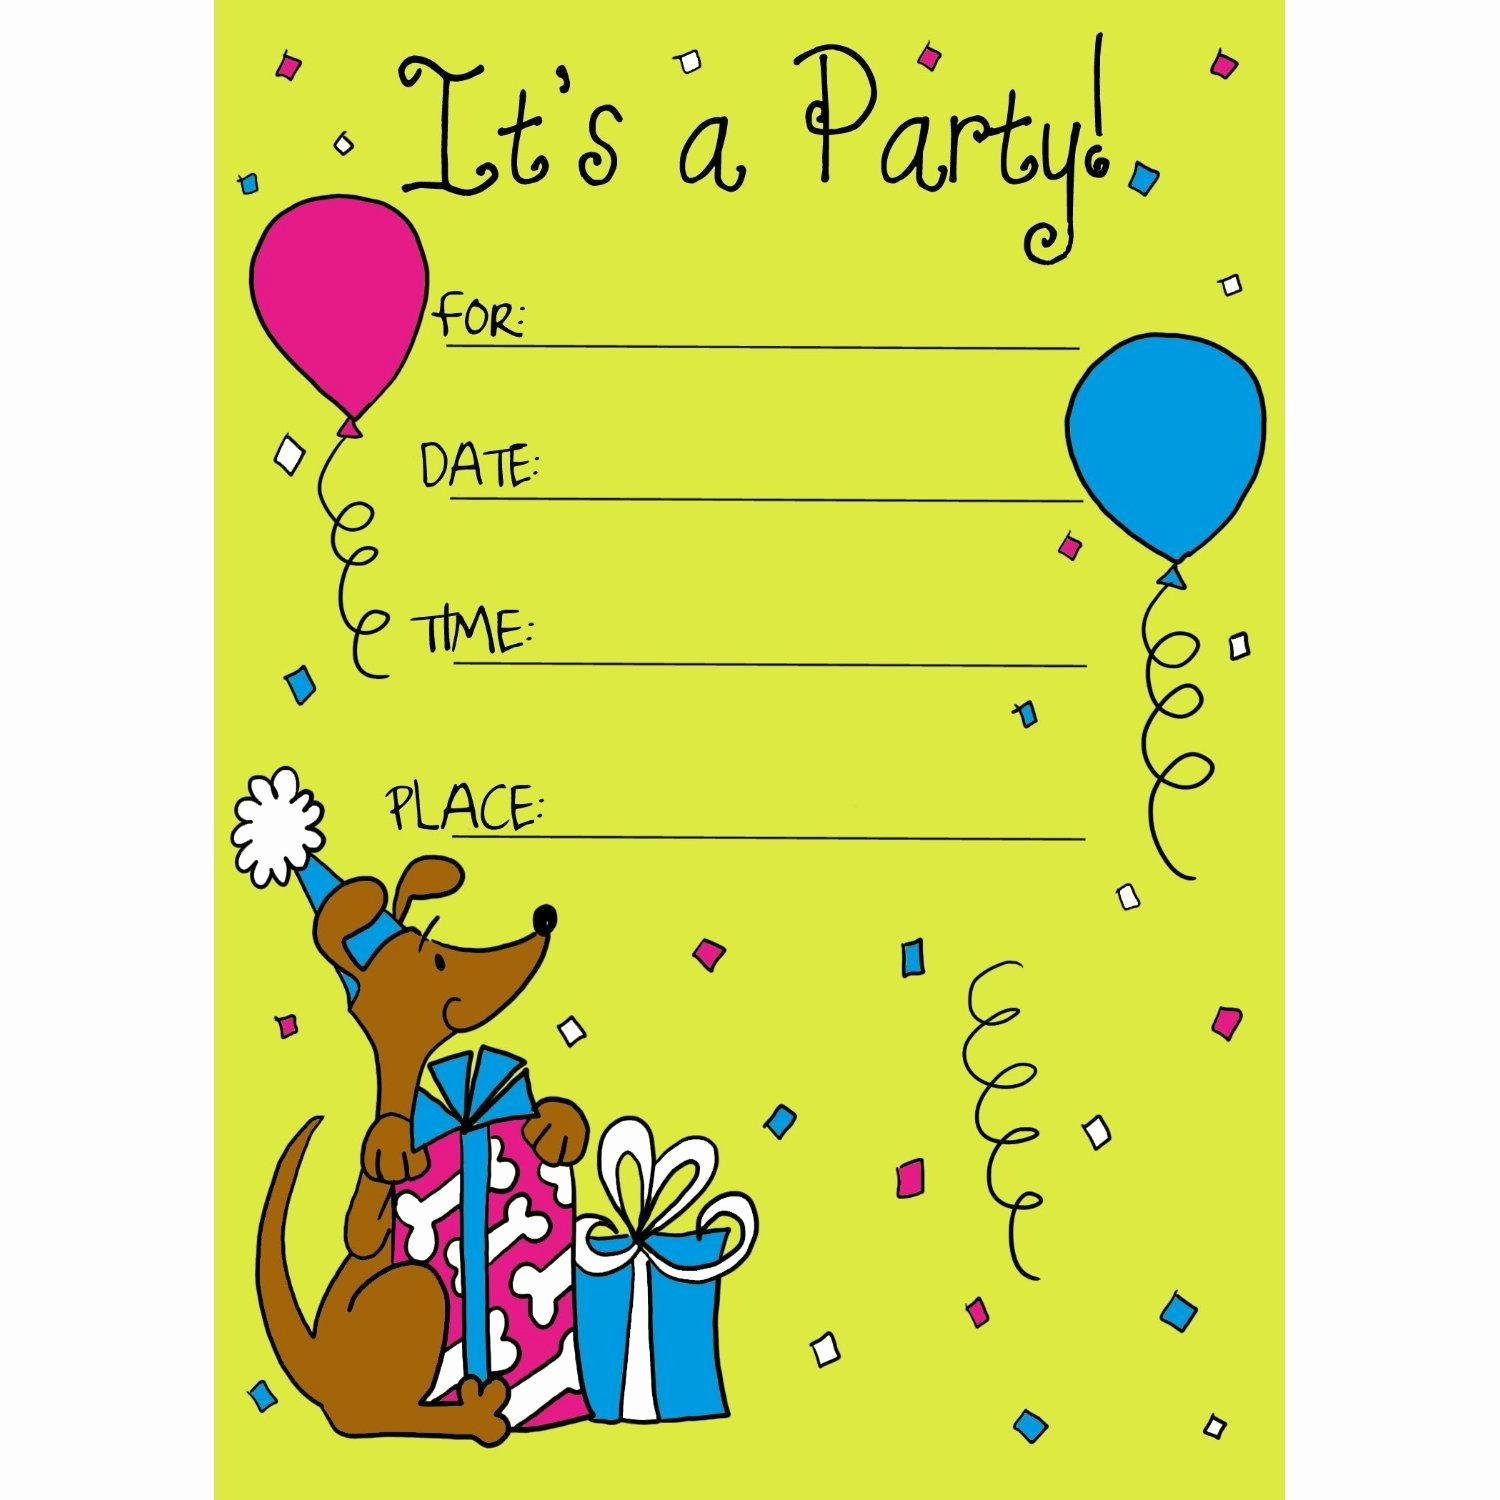 Kids Birthday Party Invite Templates New Birthday Invitation Card for Child